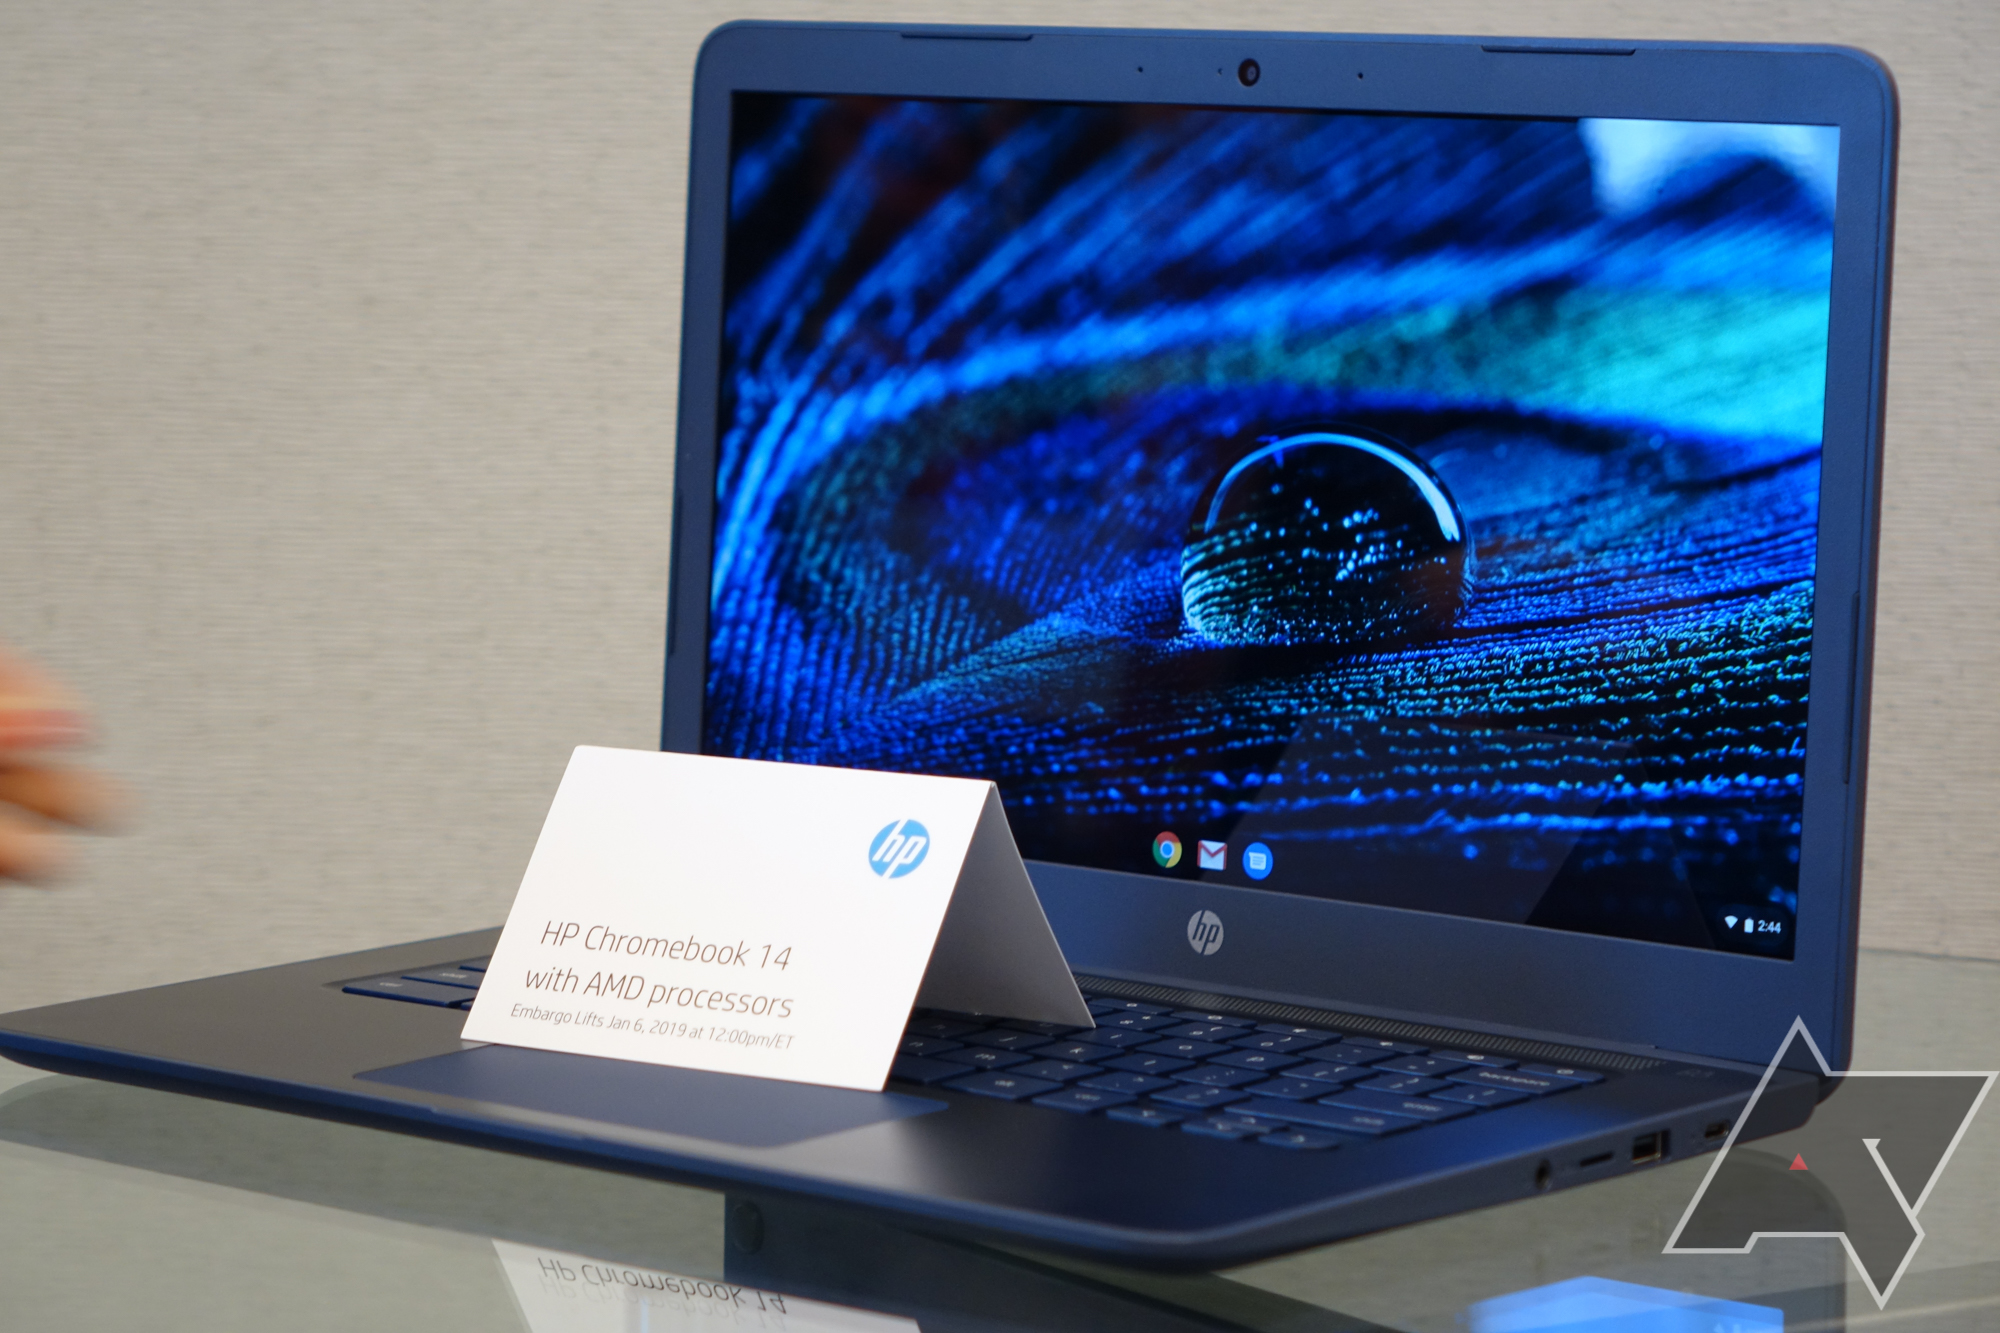 The HP Chromebook 14 is powered by an AMD processor, starts at $269